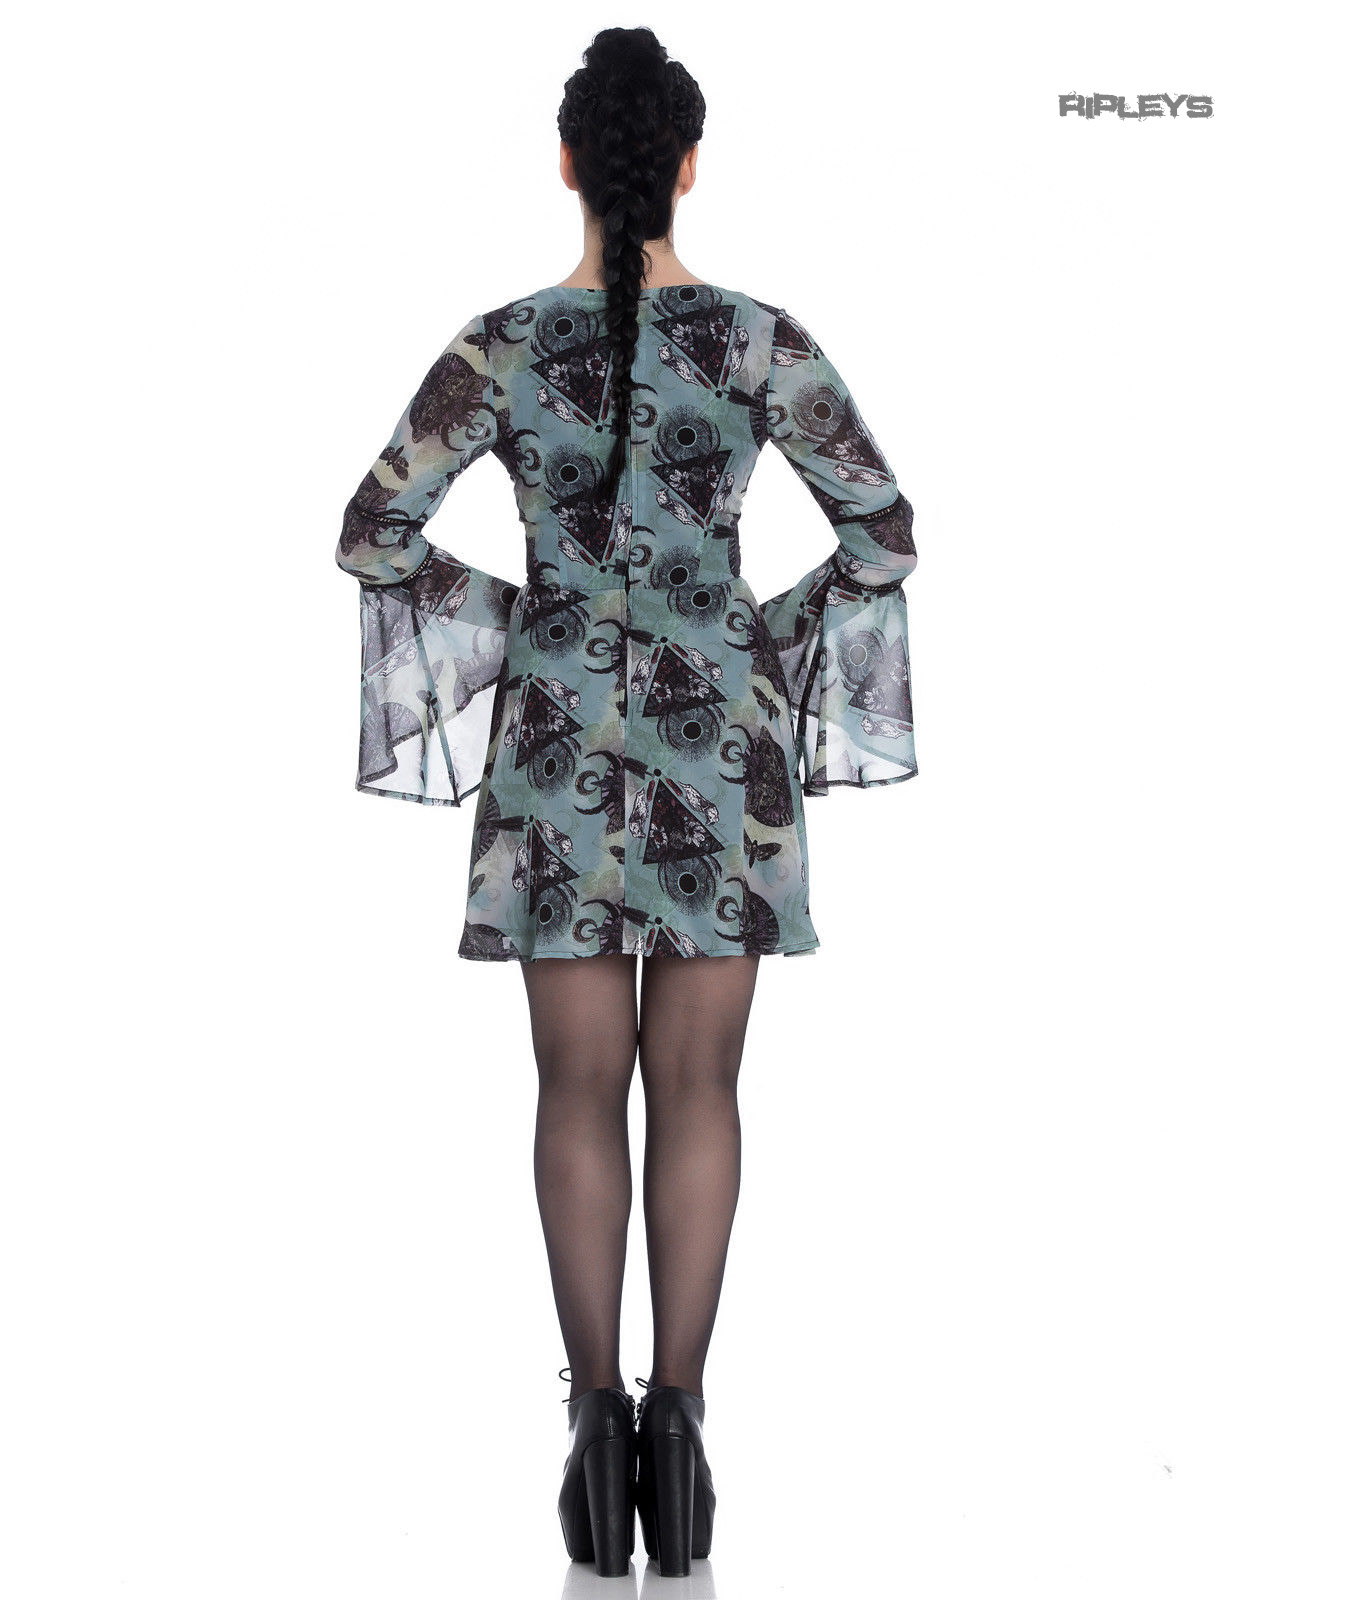 Hell-Bunny-Alchemy-Goth-Floaty-Witch-Mini-Dress-AFTER-DEATH-Teal-Green-All-Sizes thumbnail 16